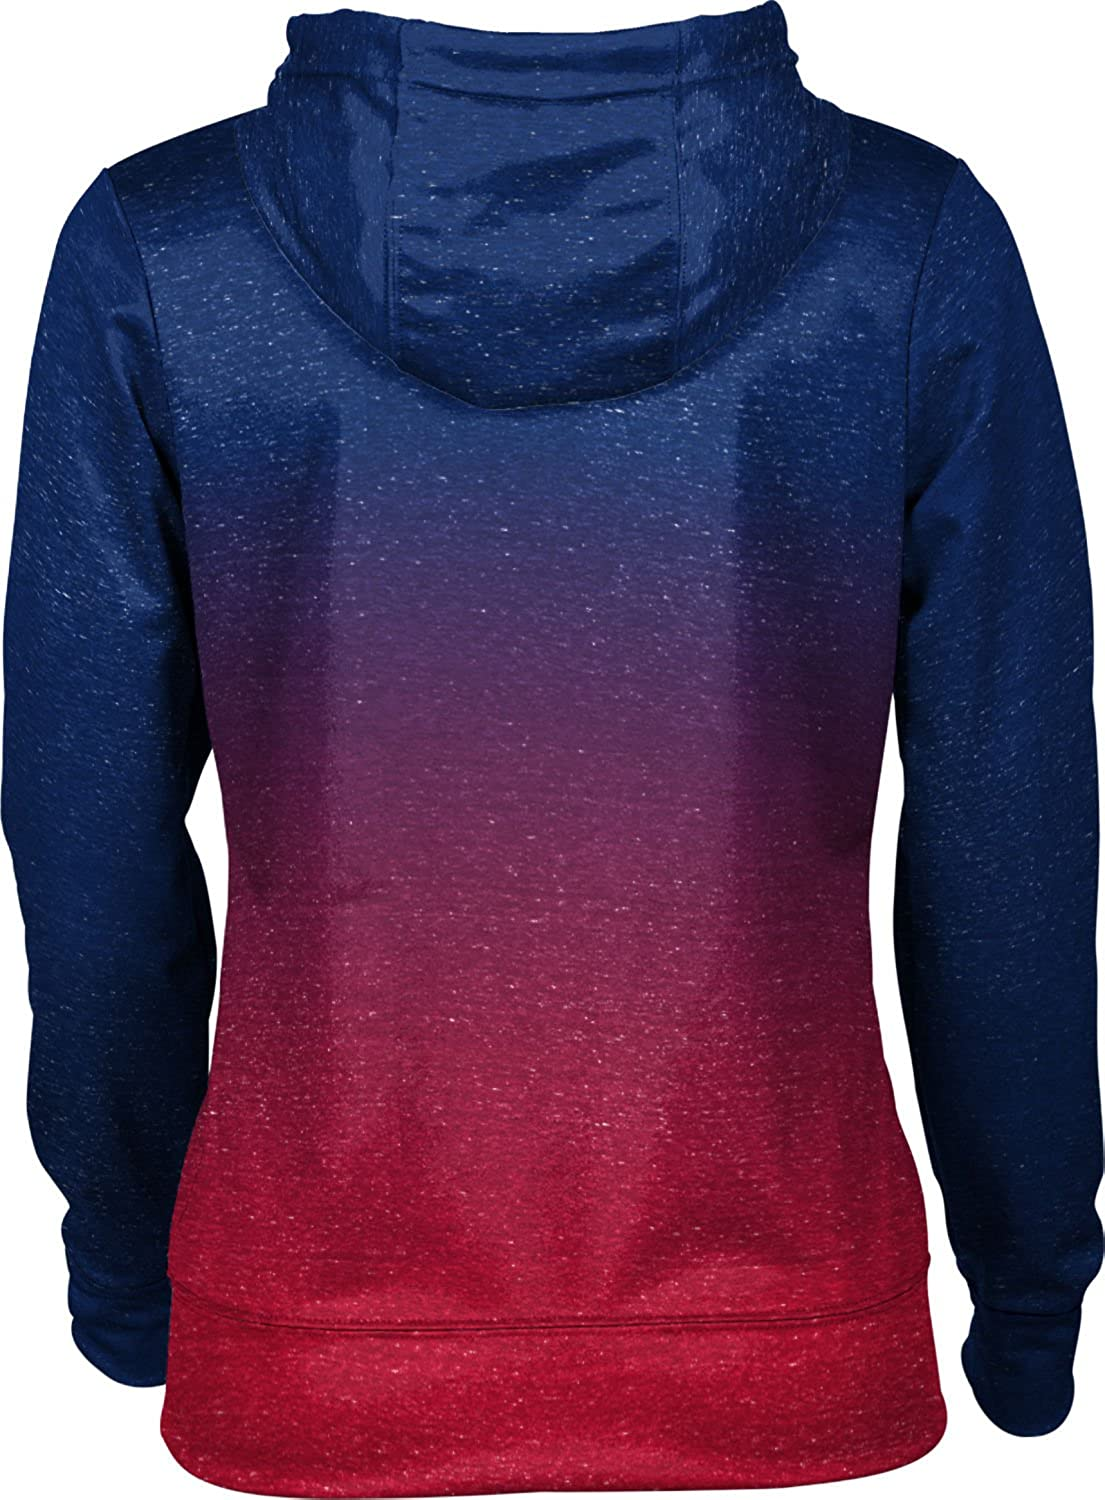 Ombre ProSphere Francis Marion University Girls Zipper Hoodie School Spirit Sweatshirt